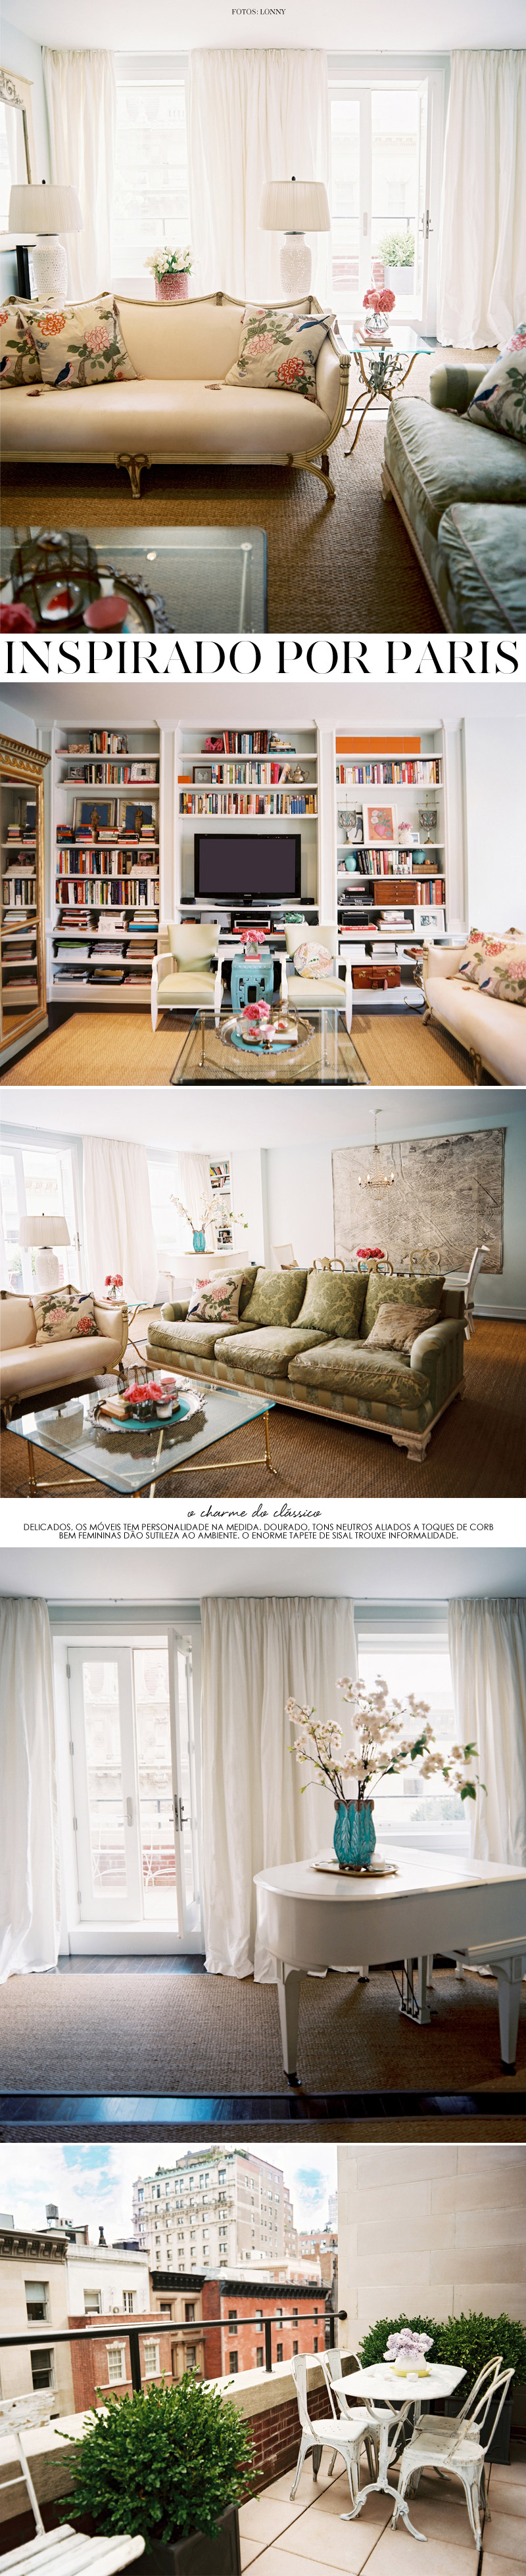 living-gazette-barbara-resende-decor-tour-apto-ny-paris-inspired